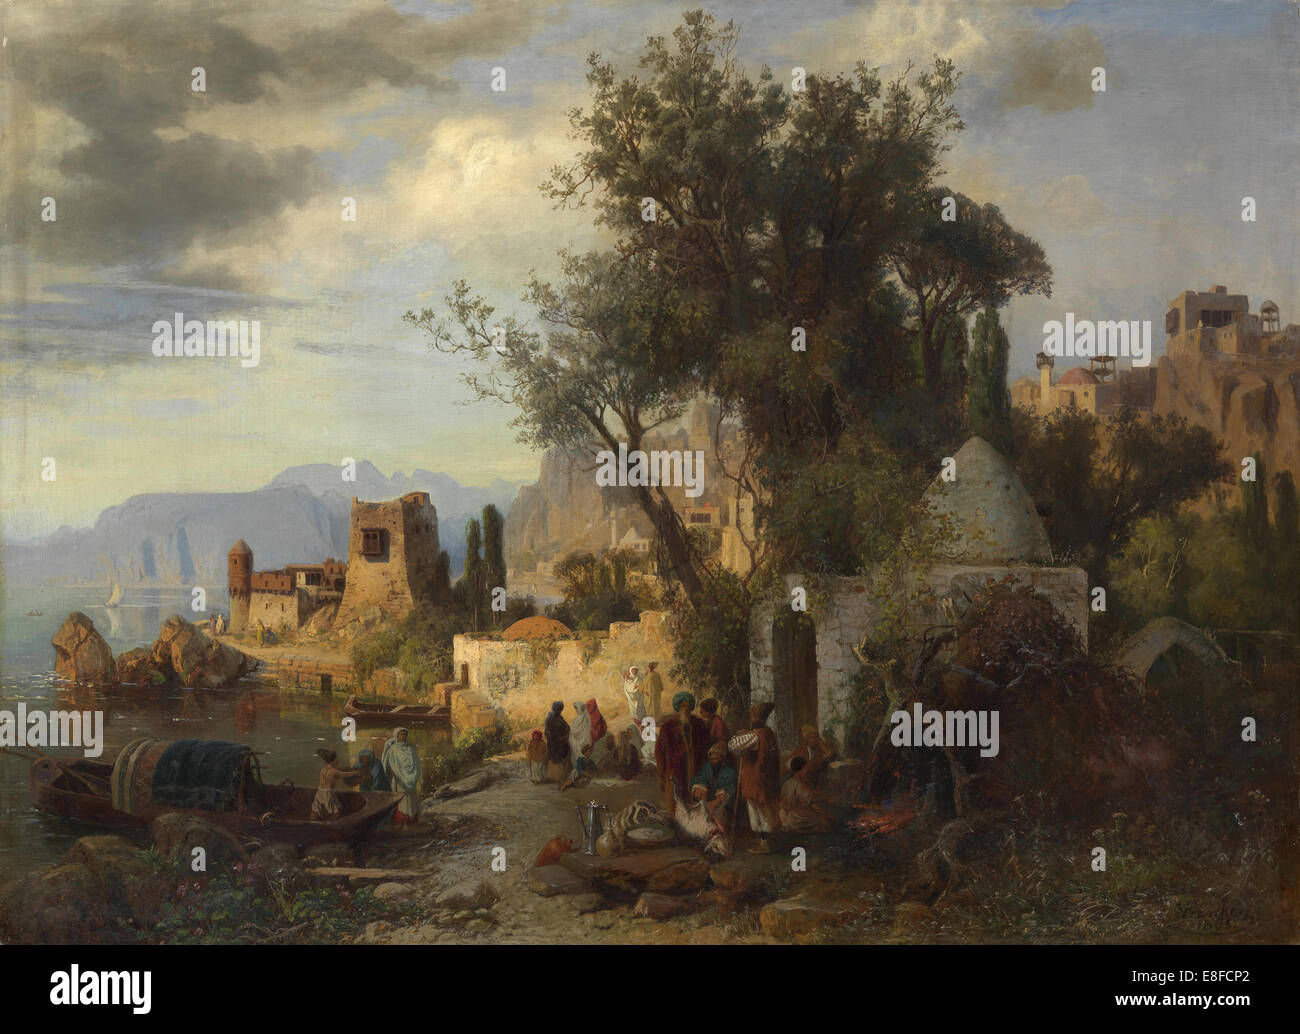 Evening by the Kura River near Tiflis. Artist: Franken, Paul von (1818-1884)Stock Photo